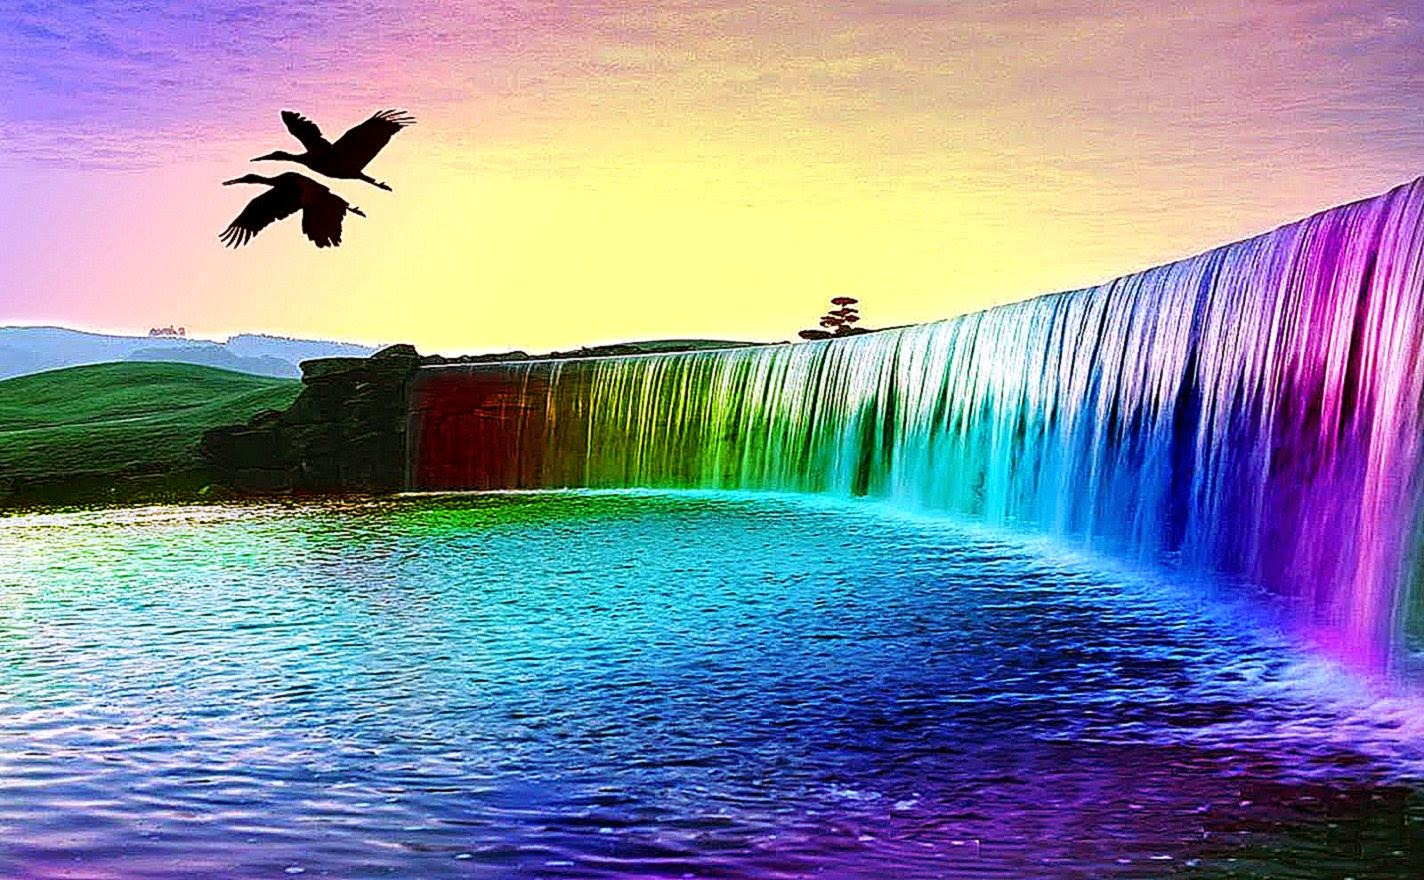 Nature Background Wallpapers 3D - HD Images New